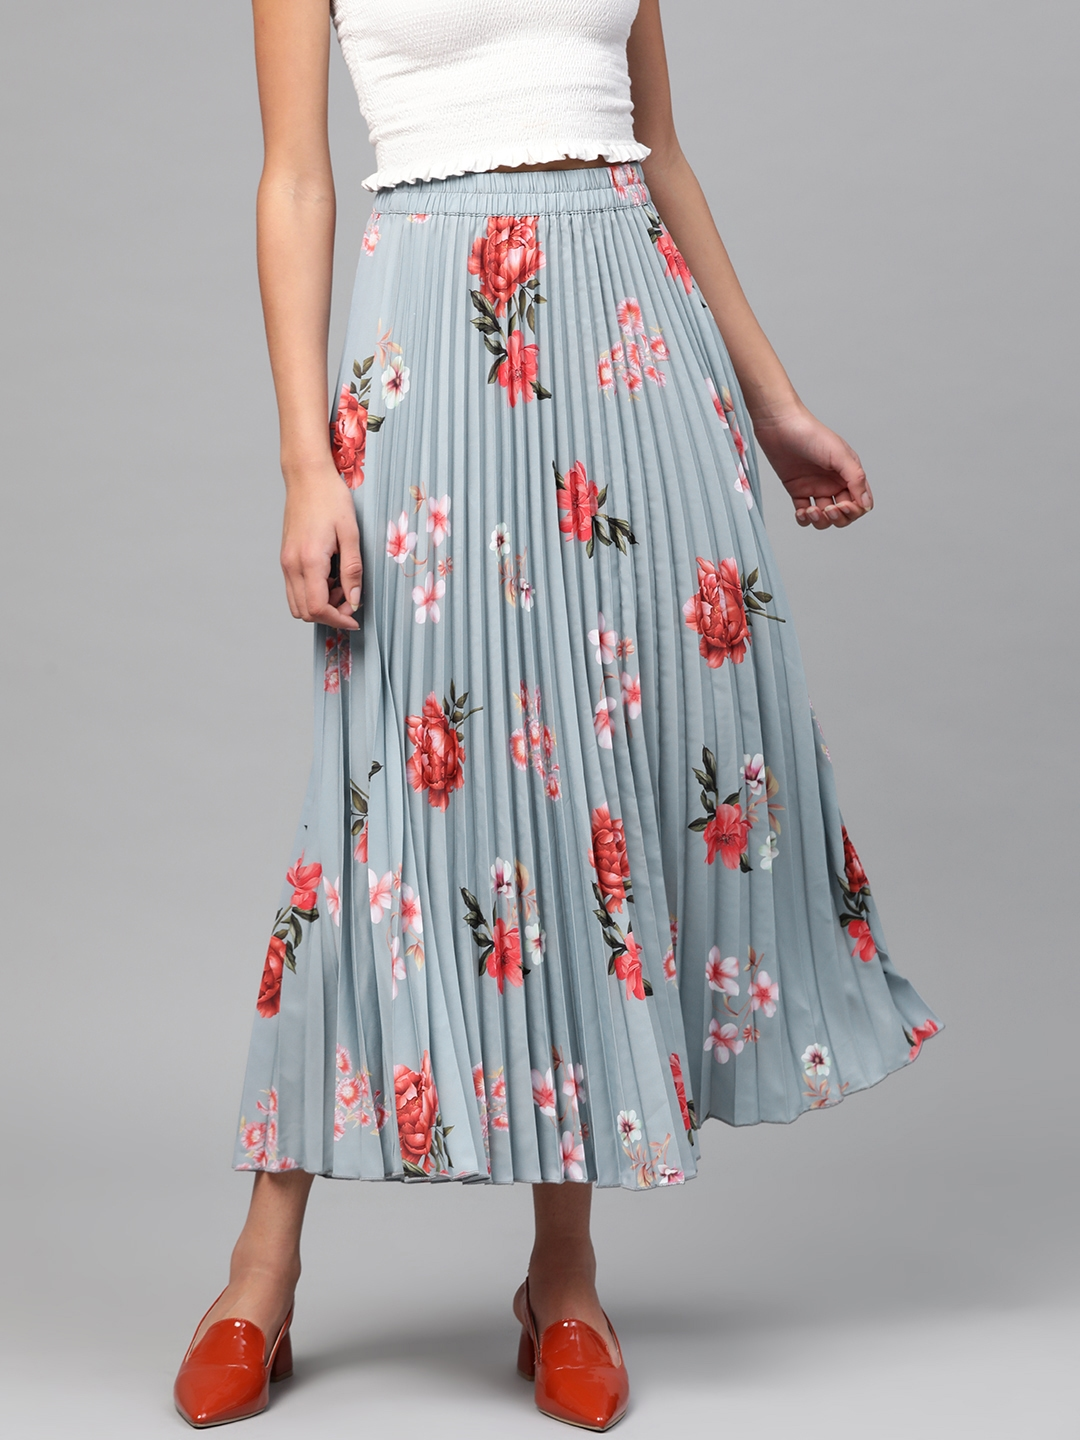 SASSAFRAS Women Grey   Red Accordion Pleated Printed A Line Skirt